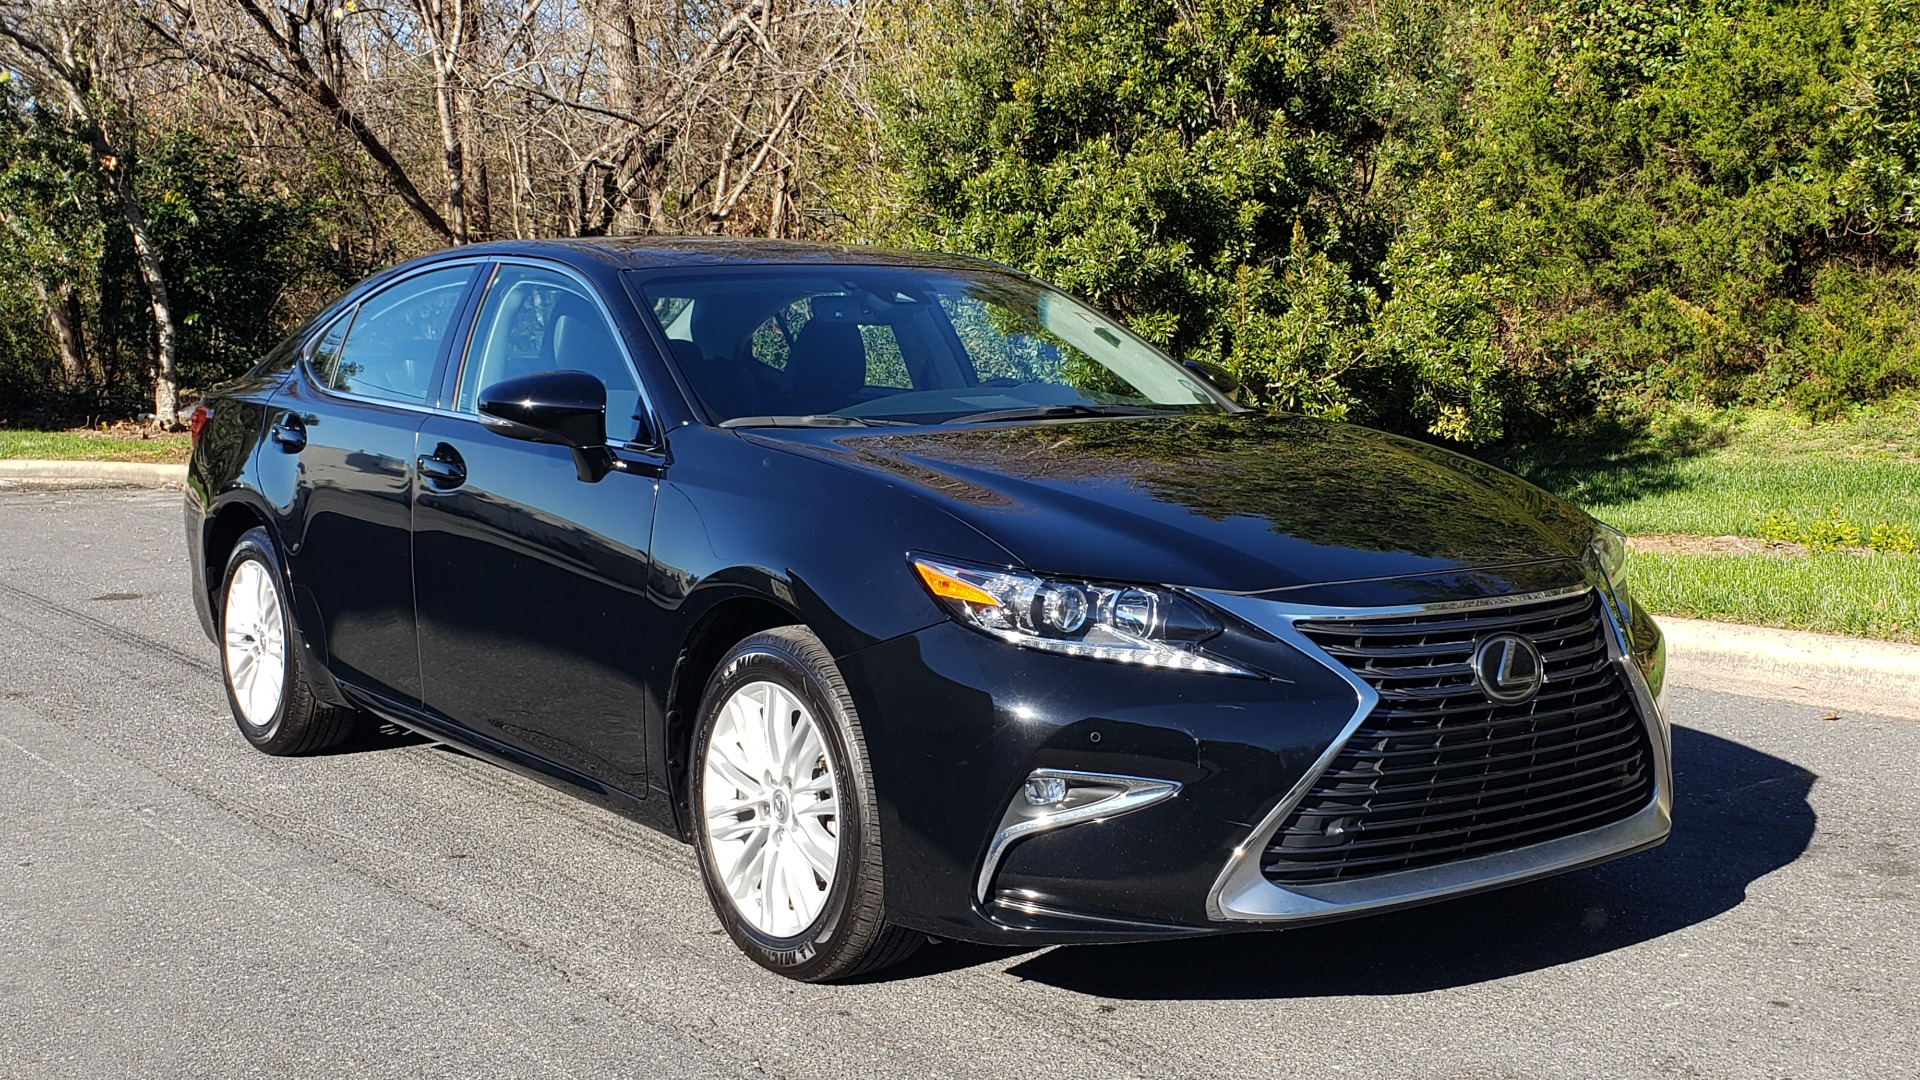 Used 2017 Lexus ES 350 PREMIUM / NAV / SUNROOF / BSM / VENT STS / REARVIEW for sale $24,795 at Formula Imports in Charlotte NC 28227 4